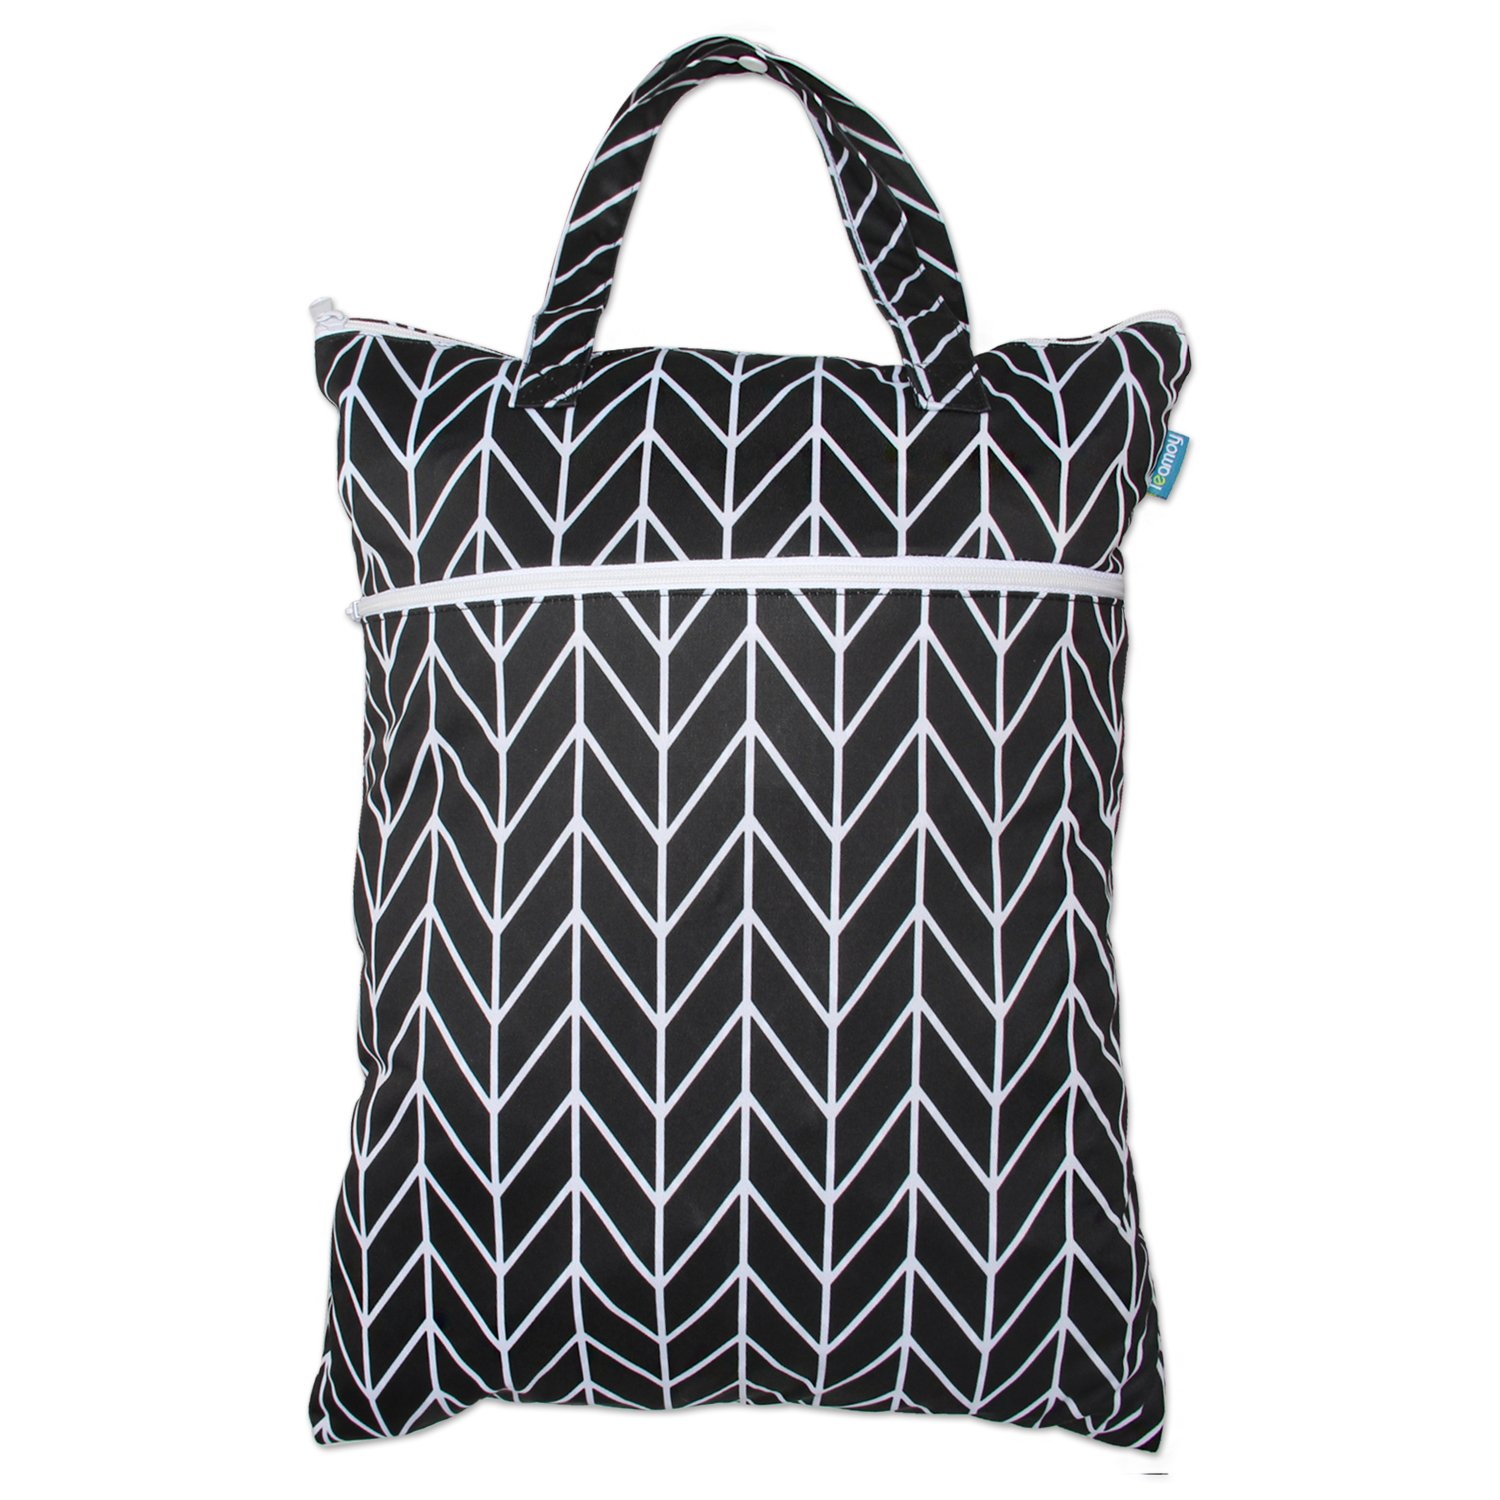 L, Black Strips Laundry Easy to Hang Everywhere 24.7 x 18 inches Teamoy Travel Hanging Wet Dry Bag Organizer with Two Compartments for Cloth Diaper Swimsuits and More